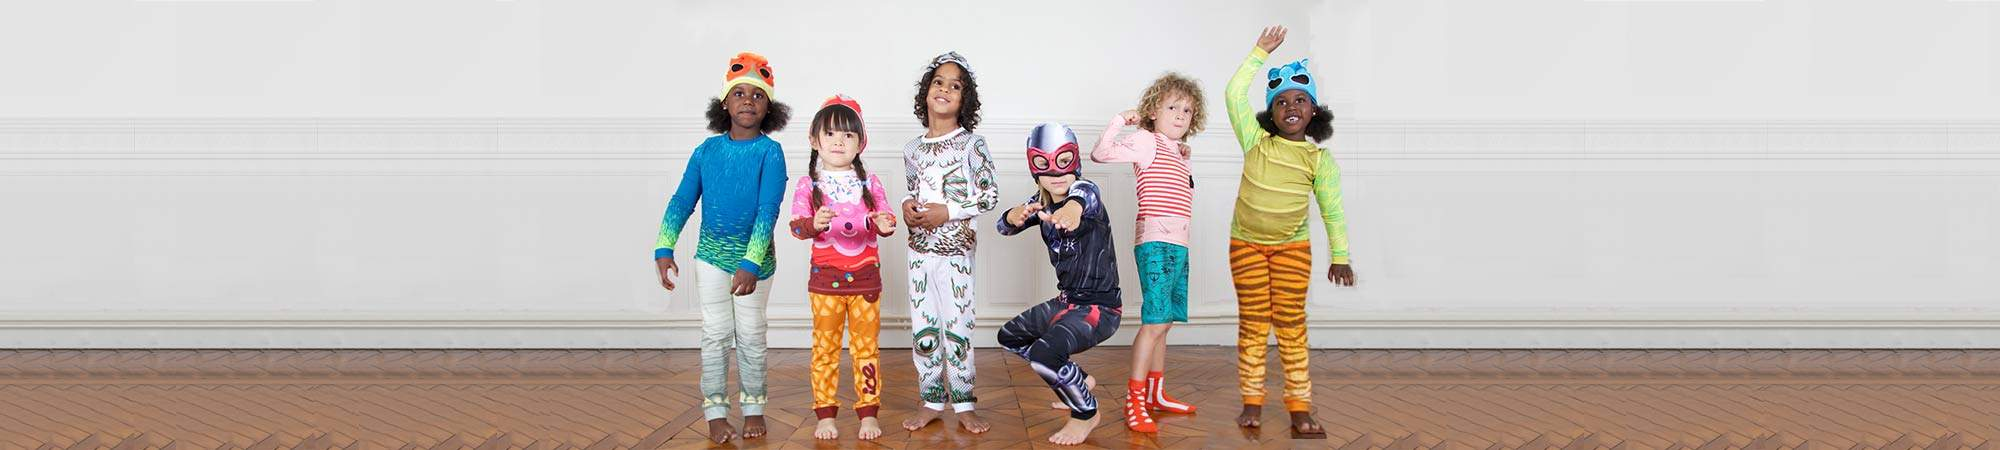 Little Bird Fun & Unique, Dress Up Adventure Playsuit Pyjama's  46% Off.  A Great Gift Idea For The End Of School